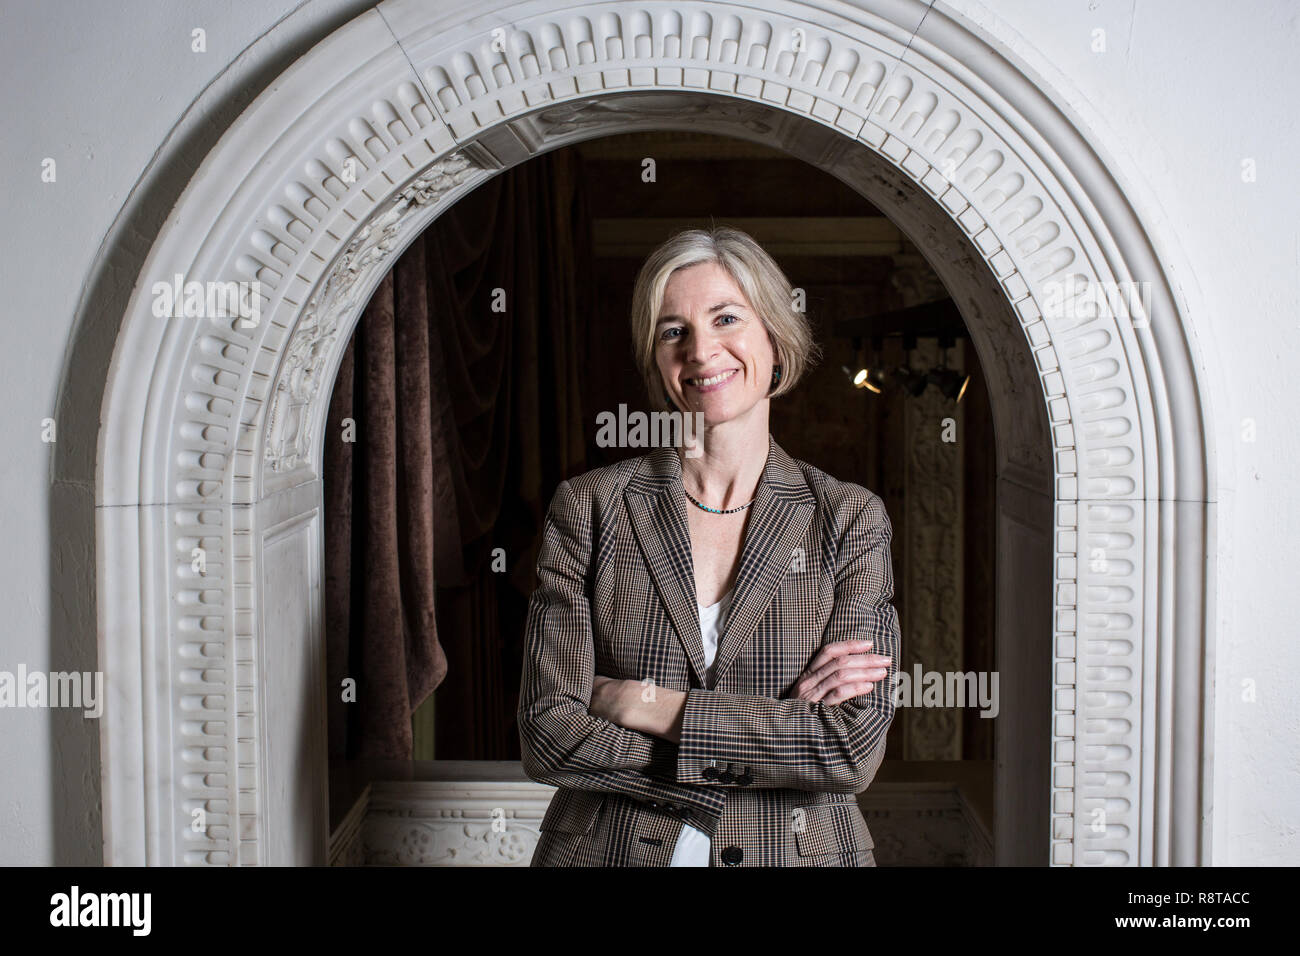 Jennifer Doudna, American biochemist, Professor in Chemistry and Chemical Engineering and the Department of Molecular and Cell Biology. - Stock Image